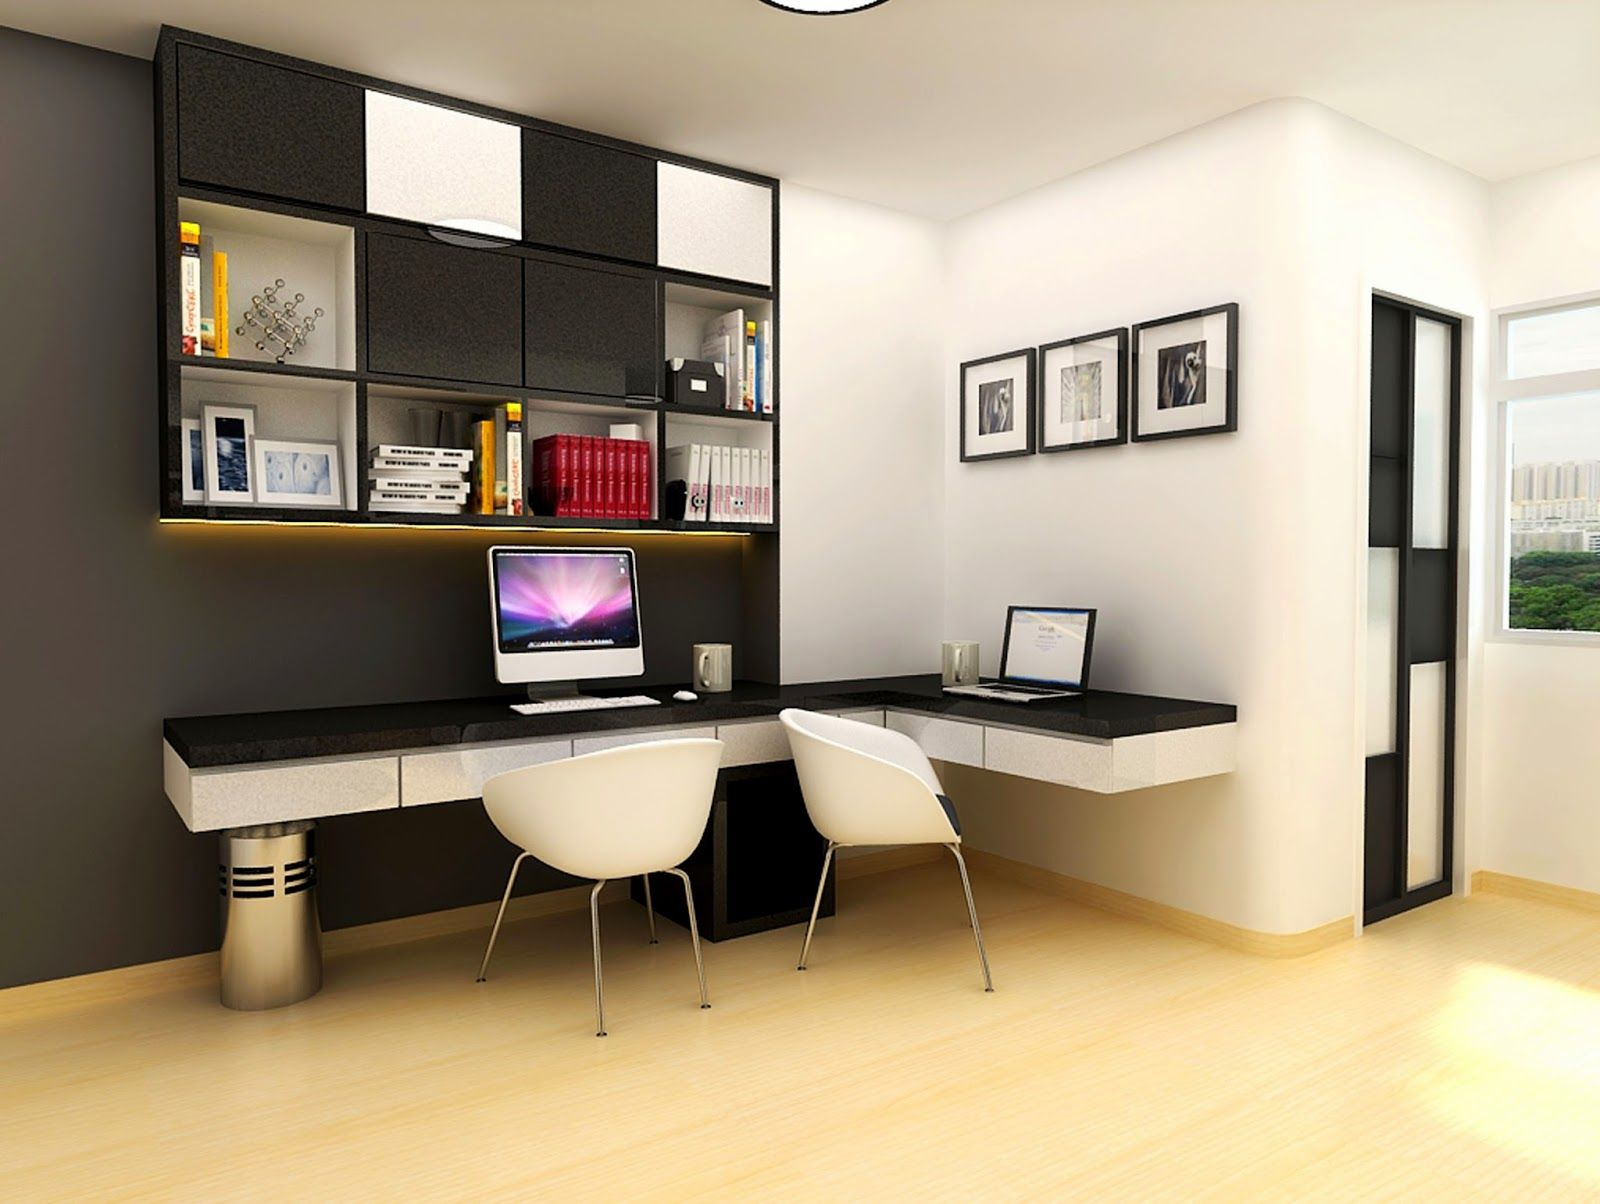 Design Inspirations | 10 Neat Yet Fun Study Room Ideas For Teenagers:  Simple And Minimalist